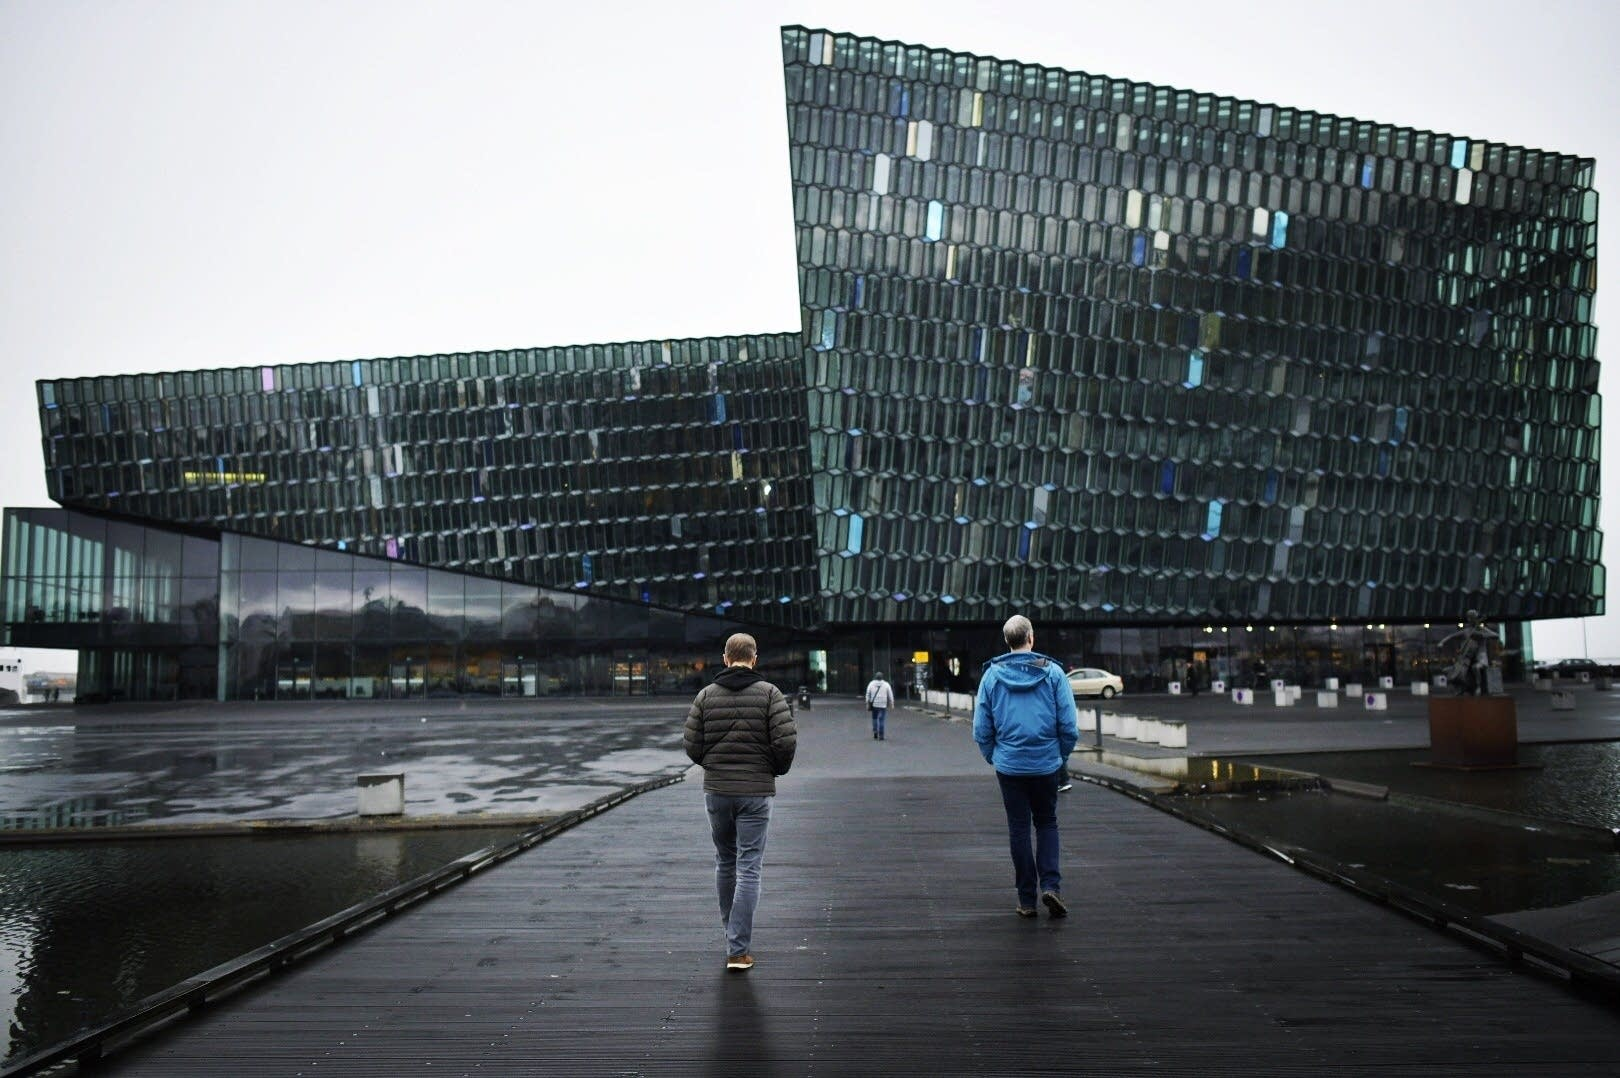 The Harpa concert hall and conference center in Reyjkavik